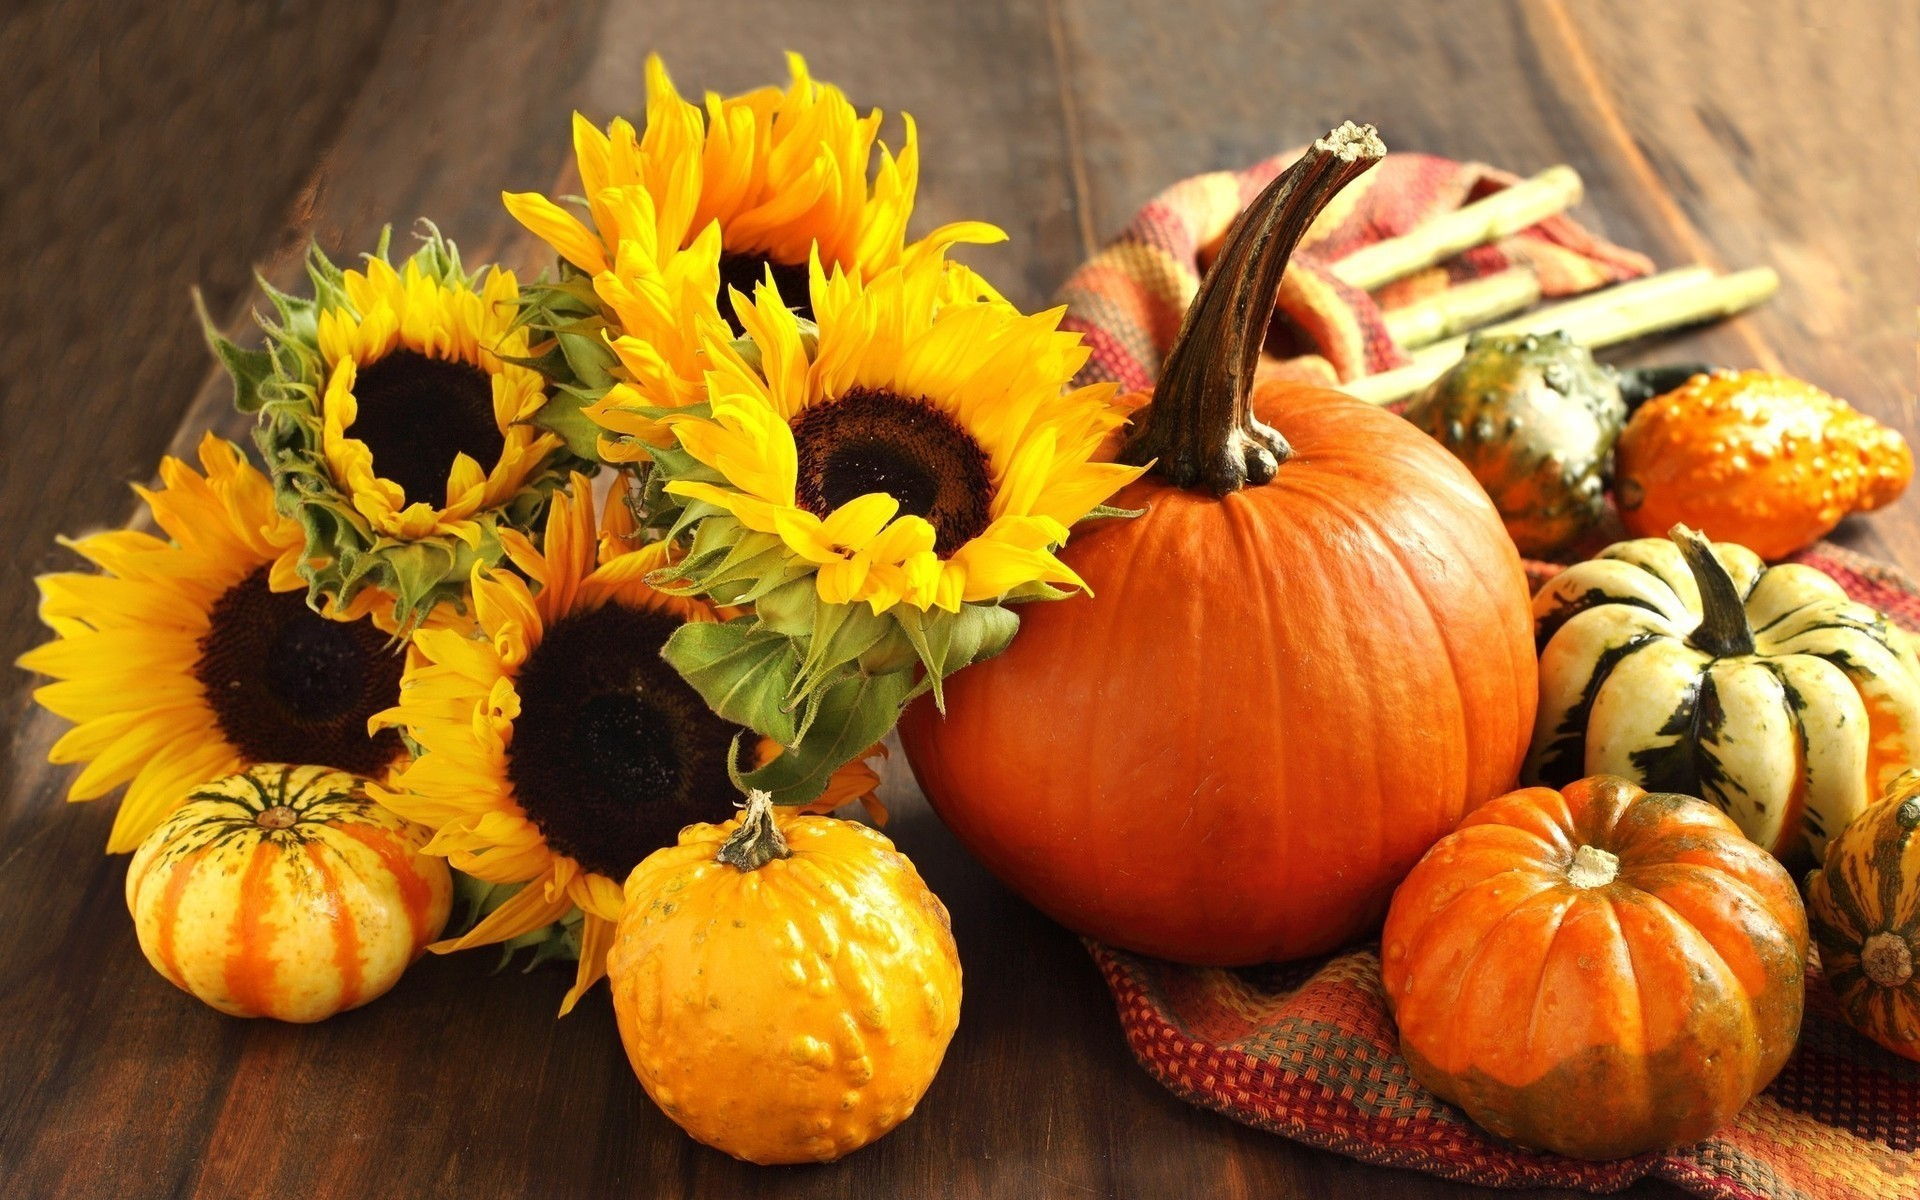 Pumpkin and Fall Flower Wallpaper 45 images 1920x1200